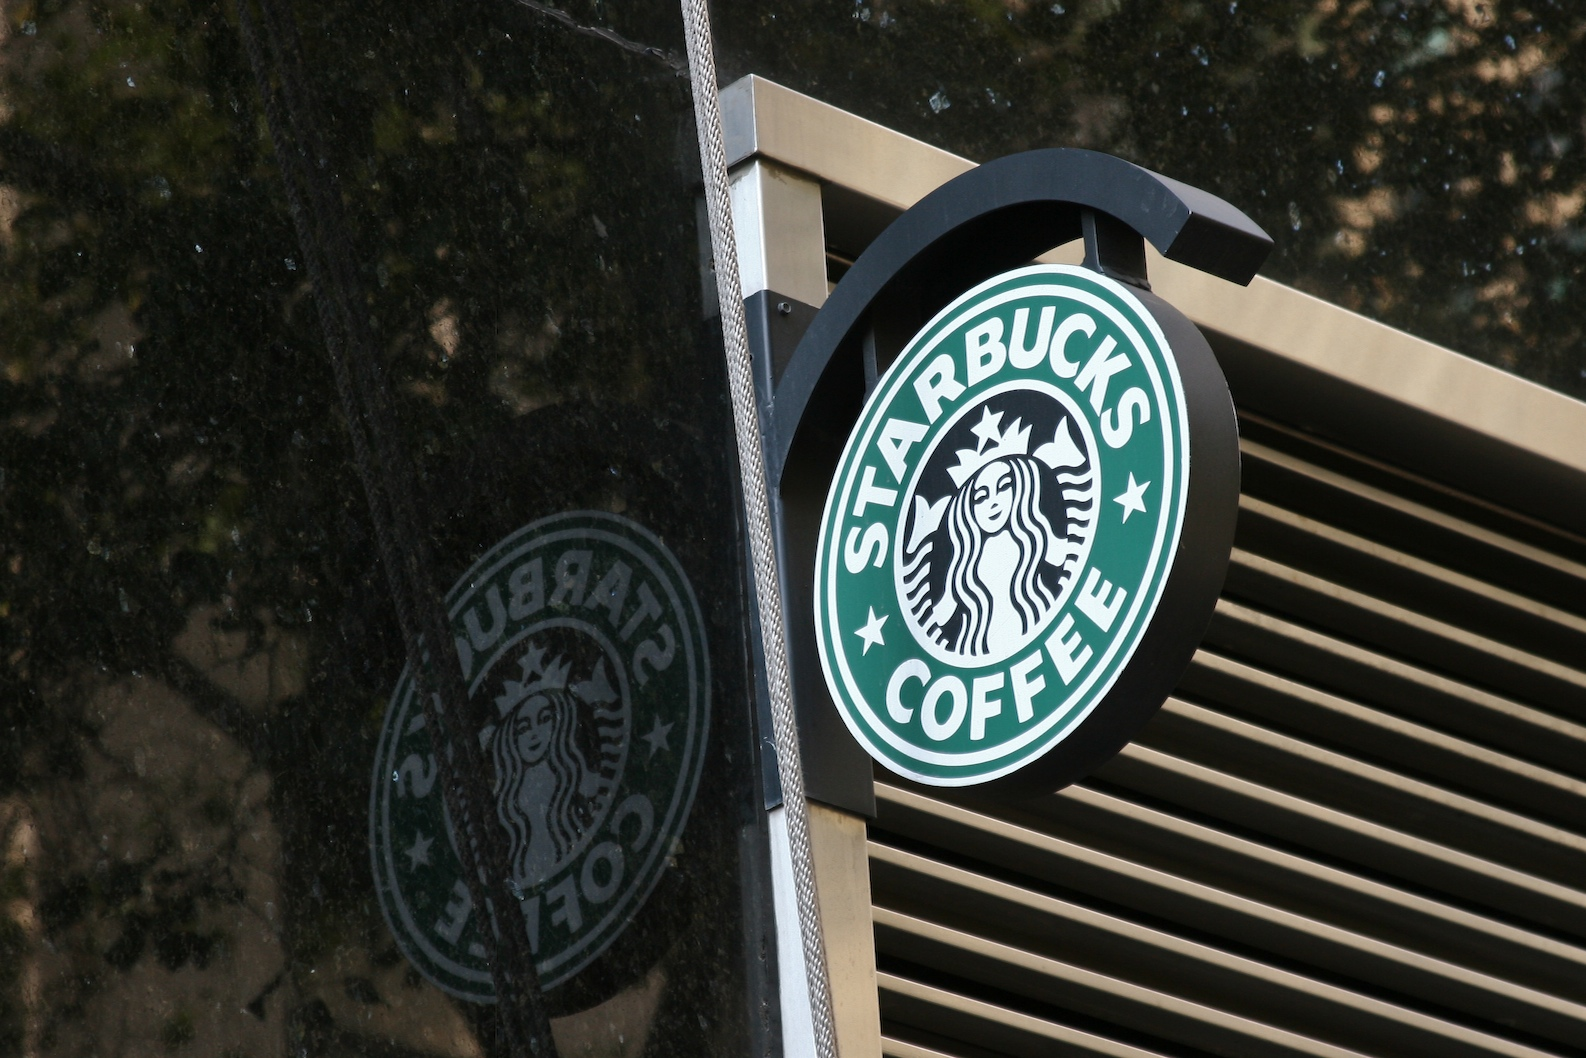 Starbucks reflected logo